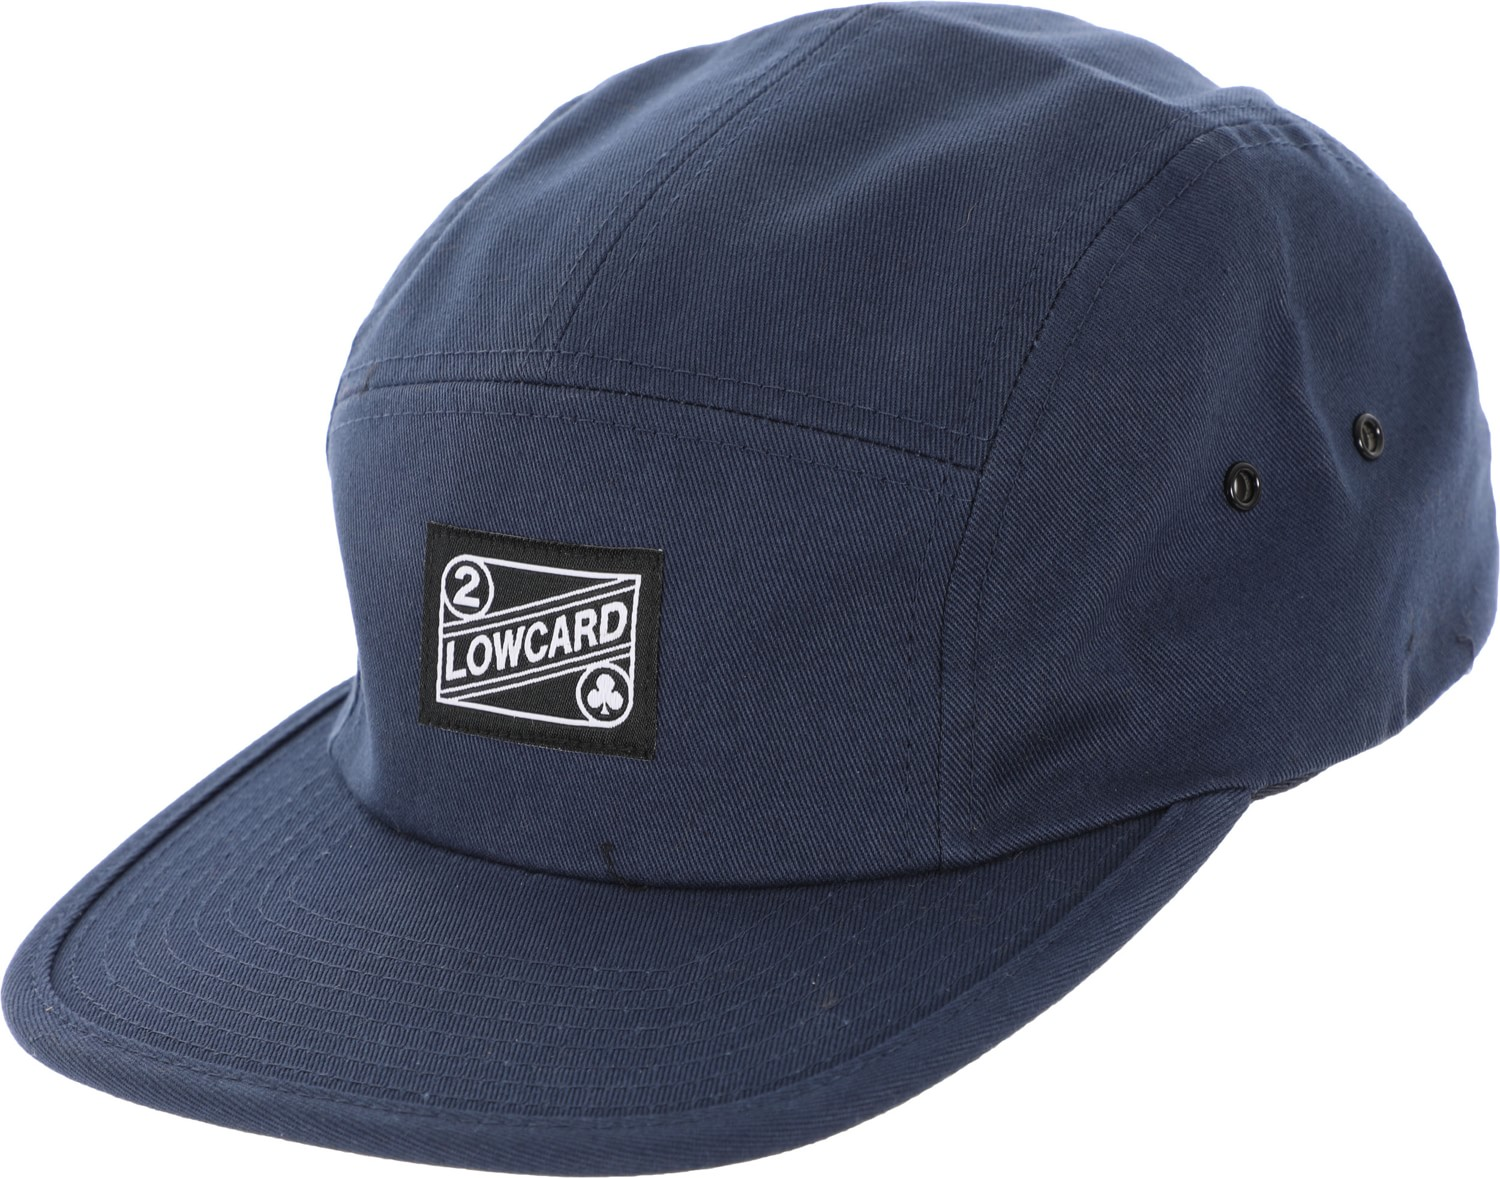 lowcard-traveler-5-panel-hat-navy.jpg